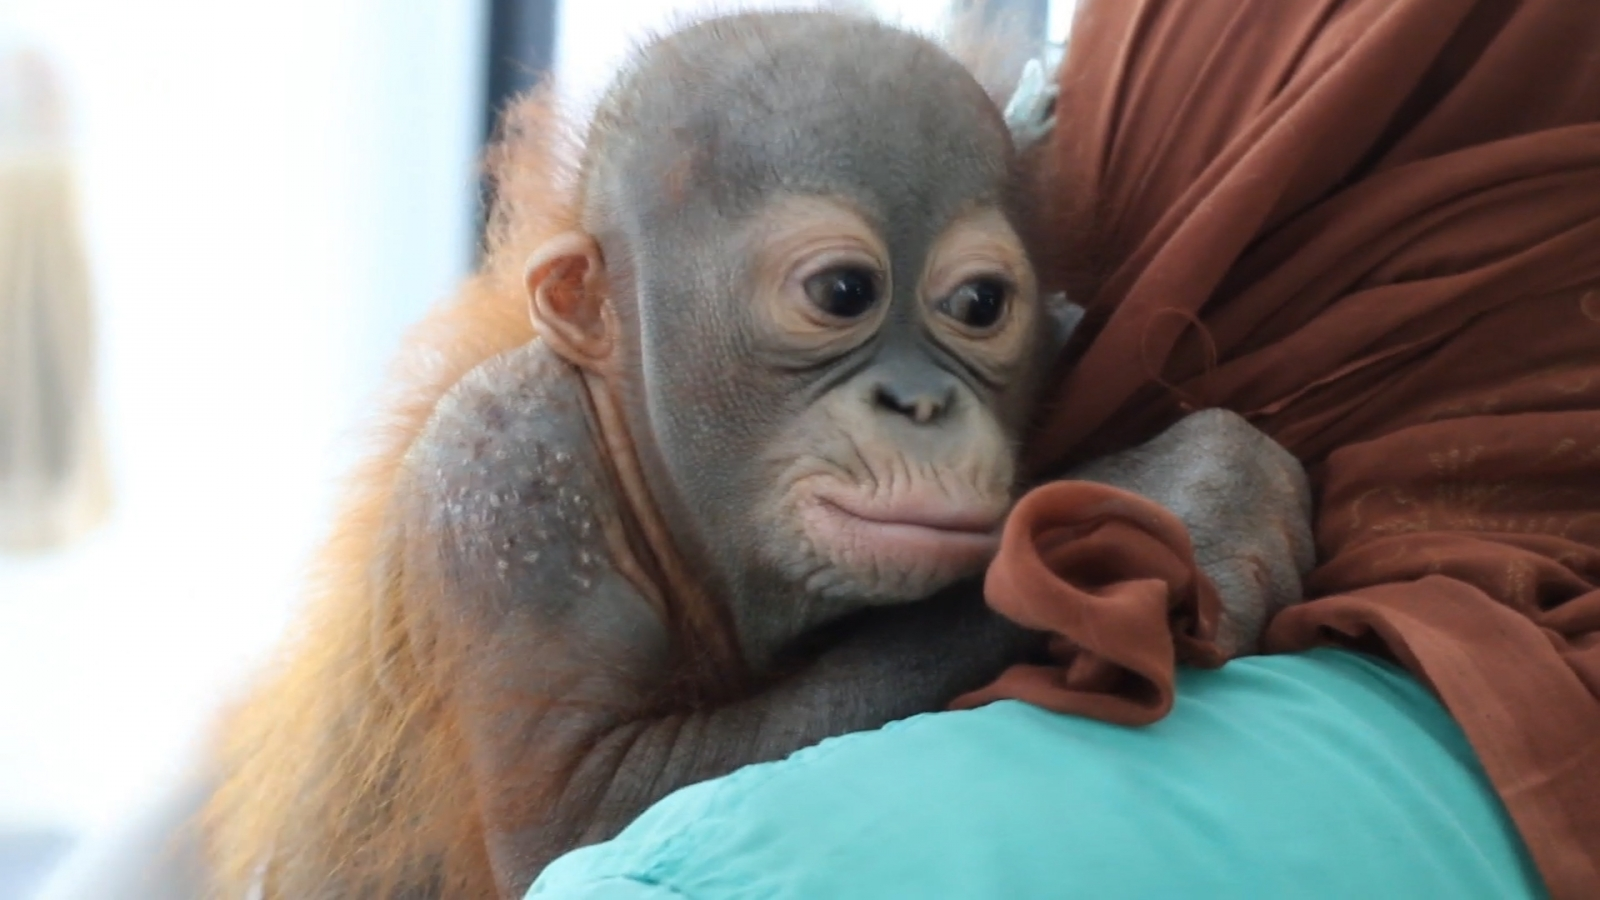 Baby orangutan has bullet removed